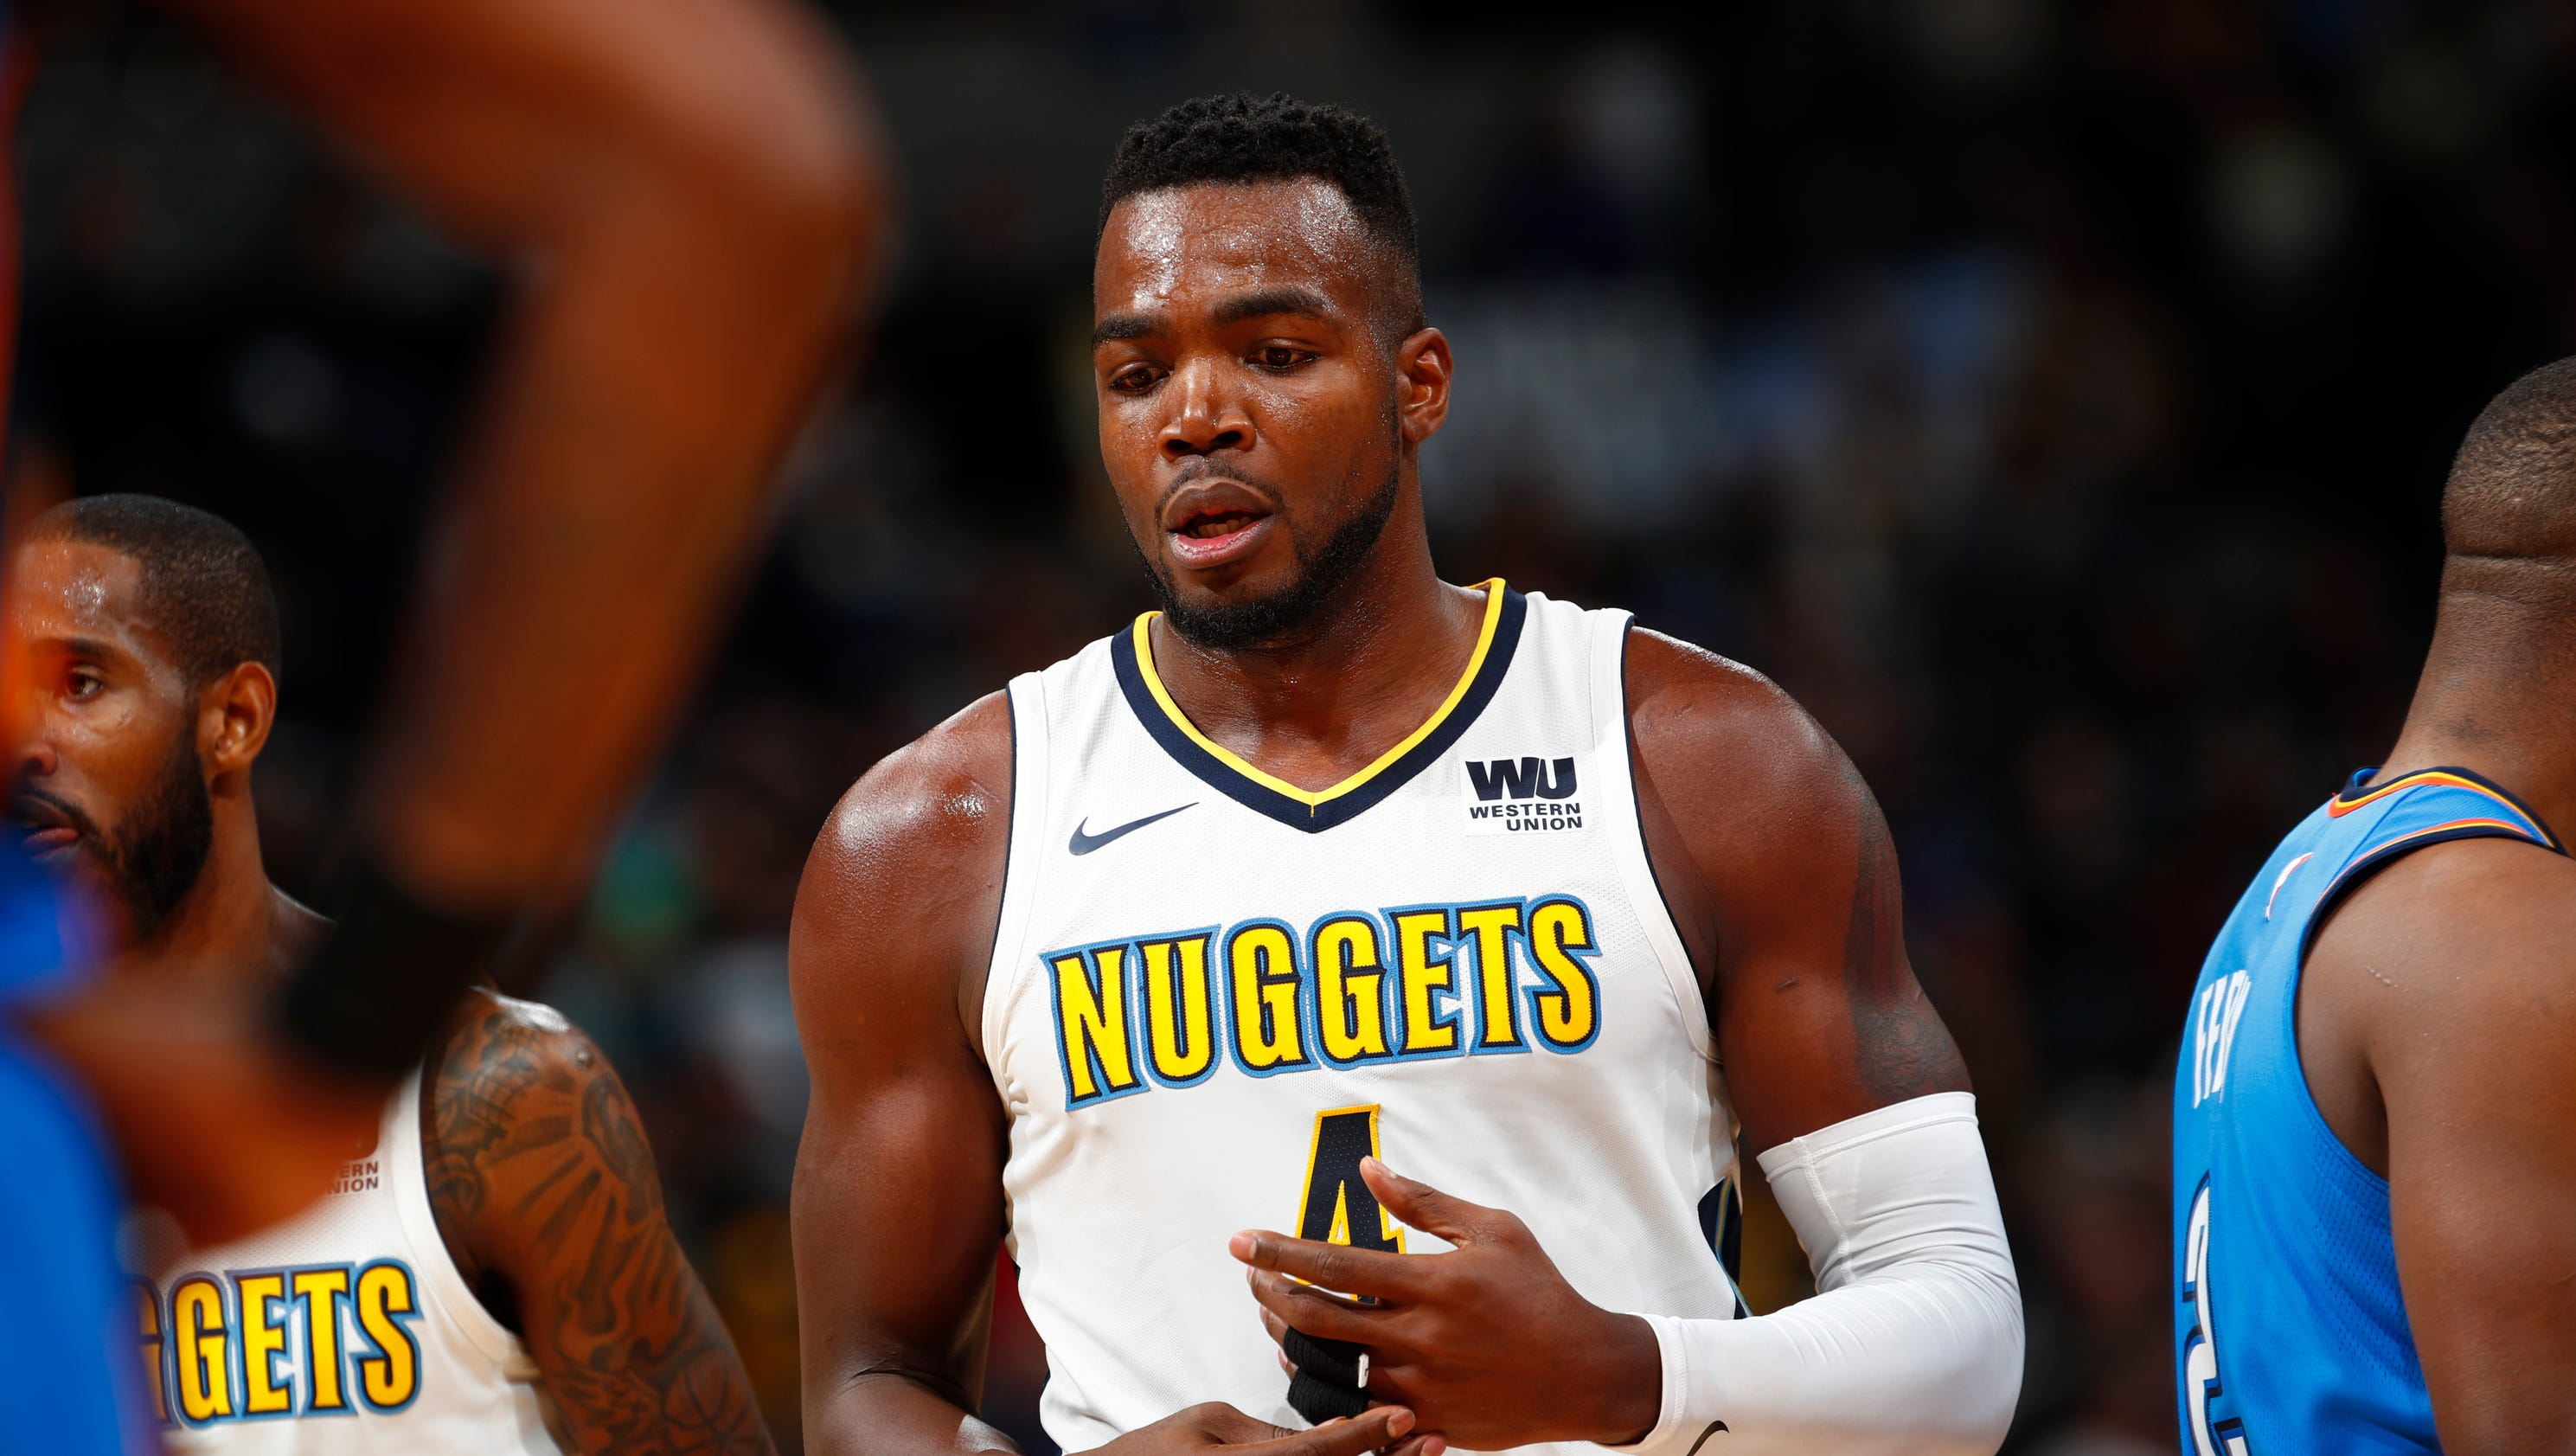 Nuggets All-Star Paul Millsap to have wrist surgery, out approximately three months